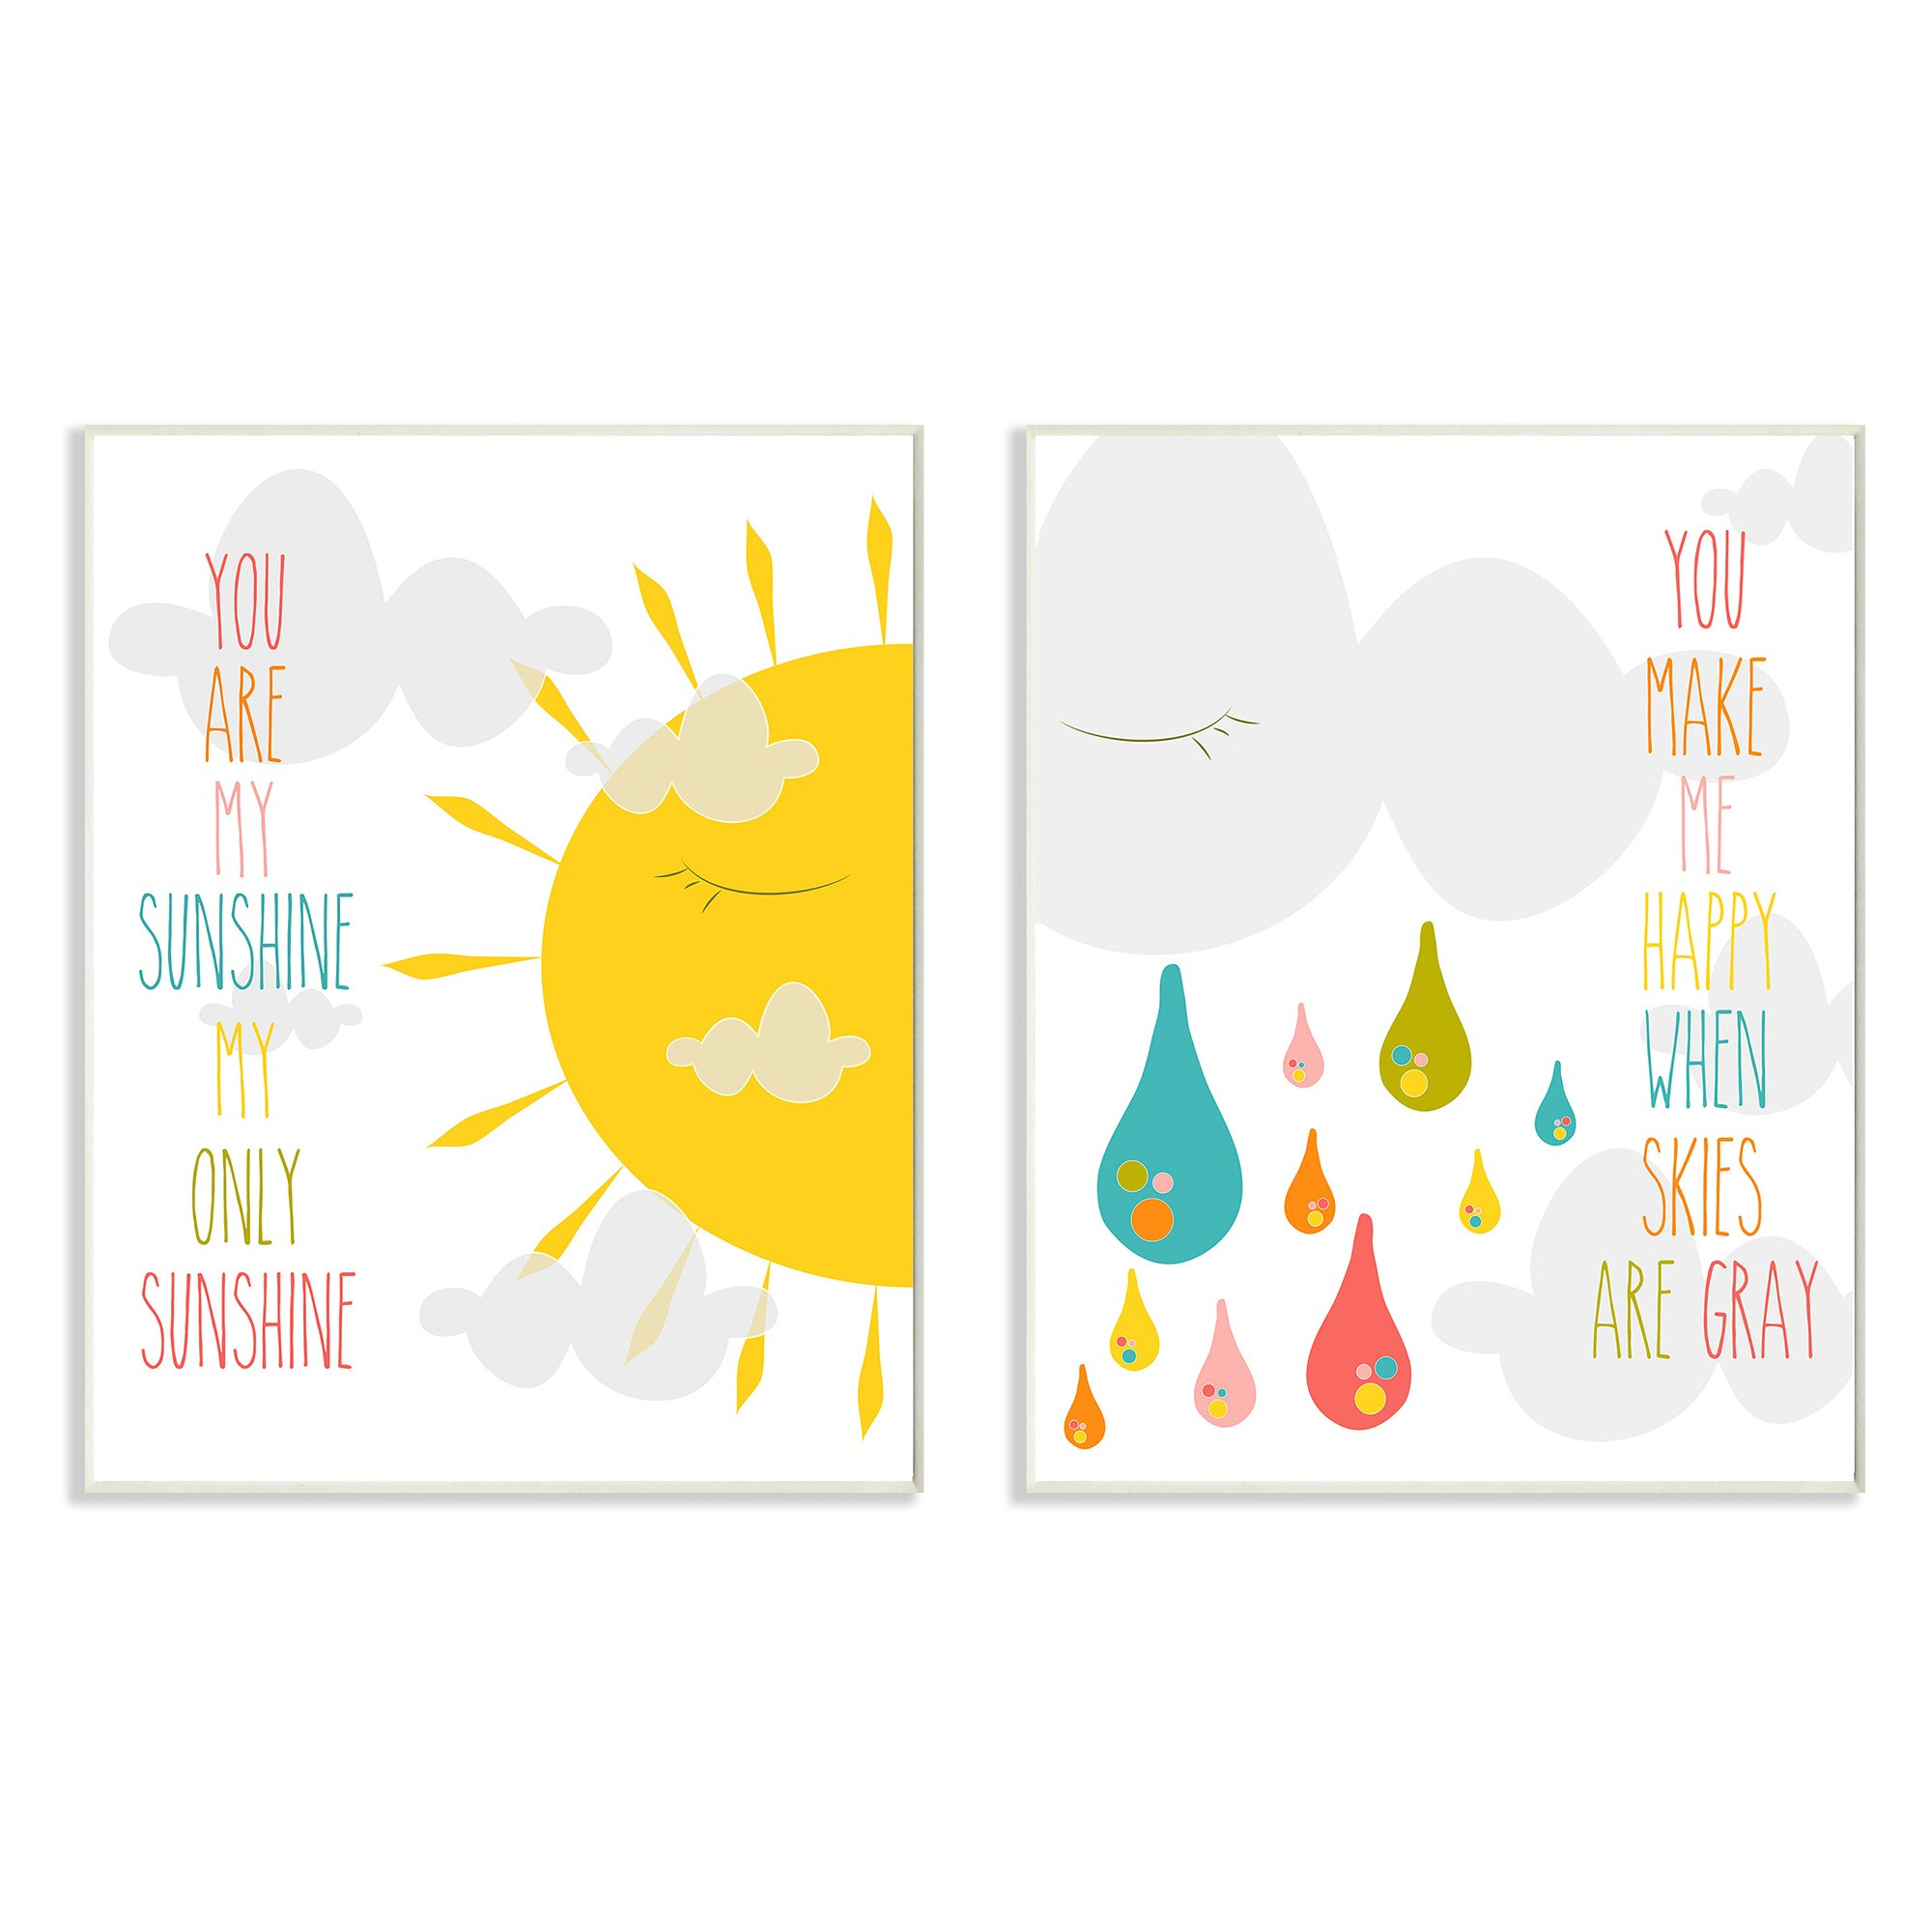 The Kids Room by Stupell 2 Piece Graphic Wall Plaque Set, You are My Sunshine by The Kids Room by Stupell